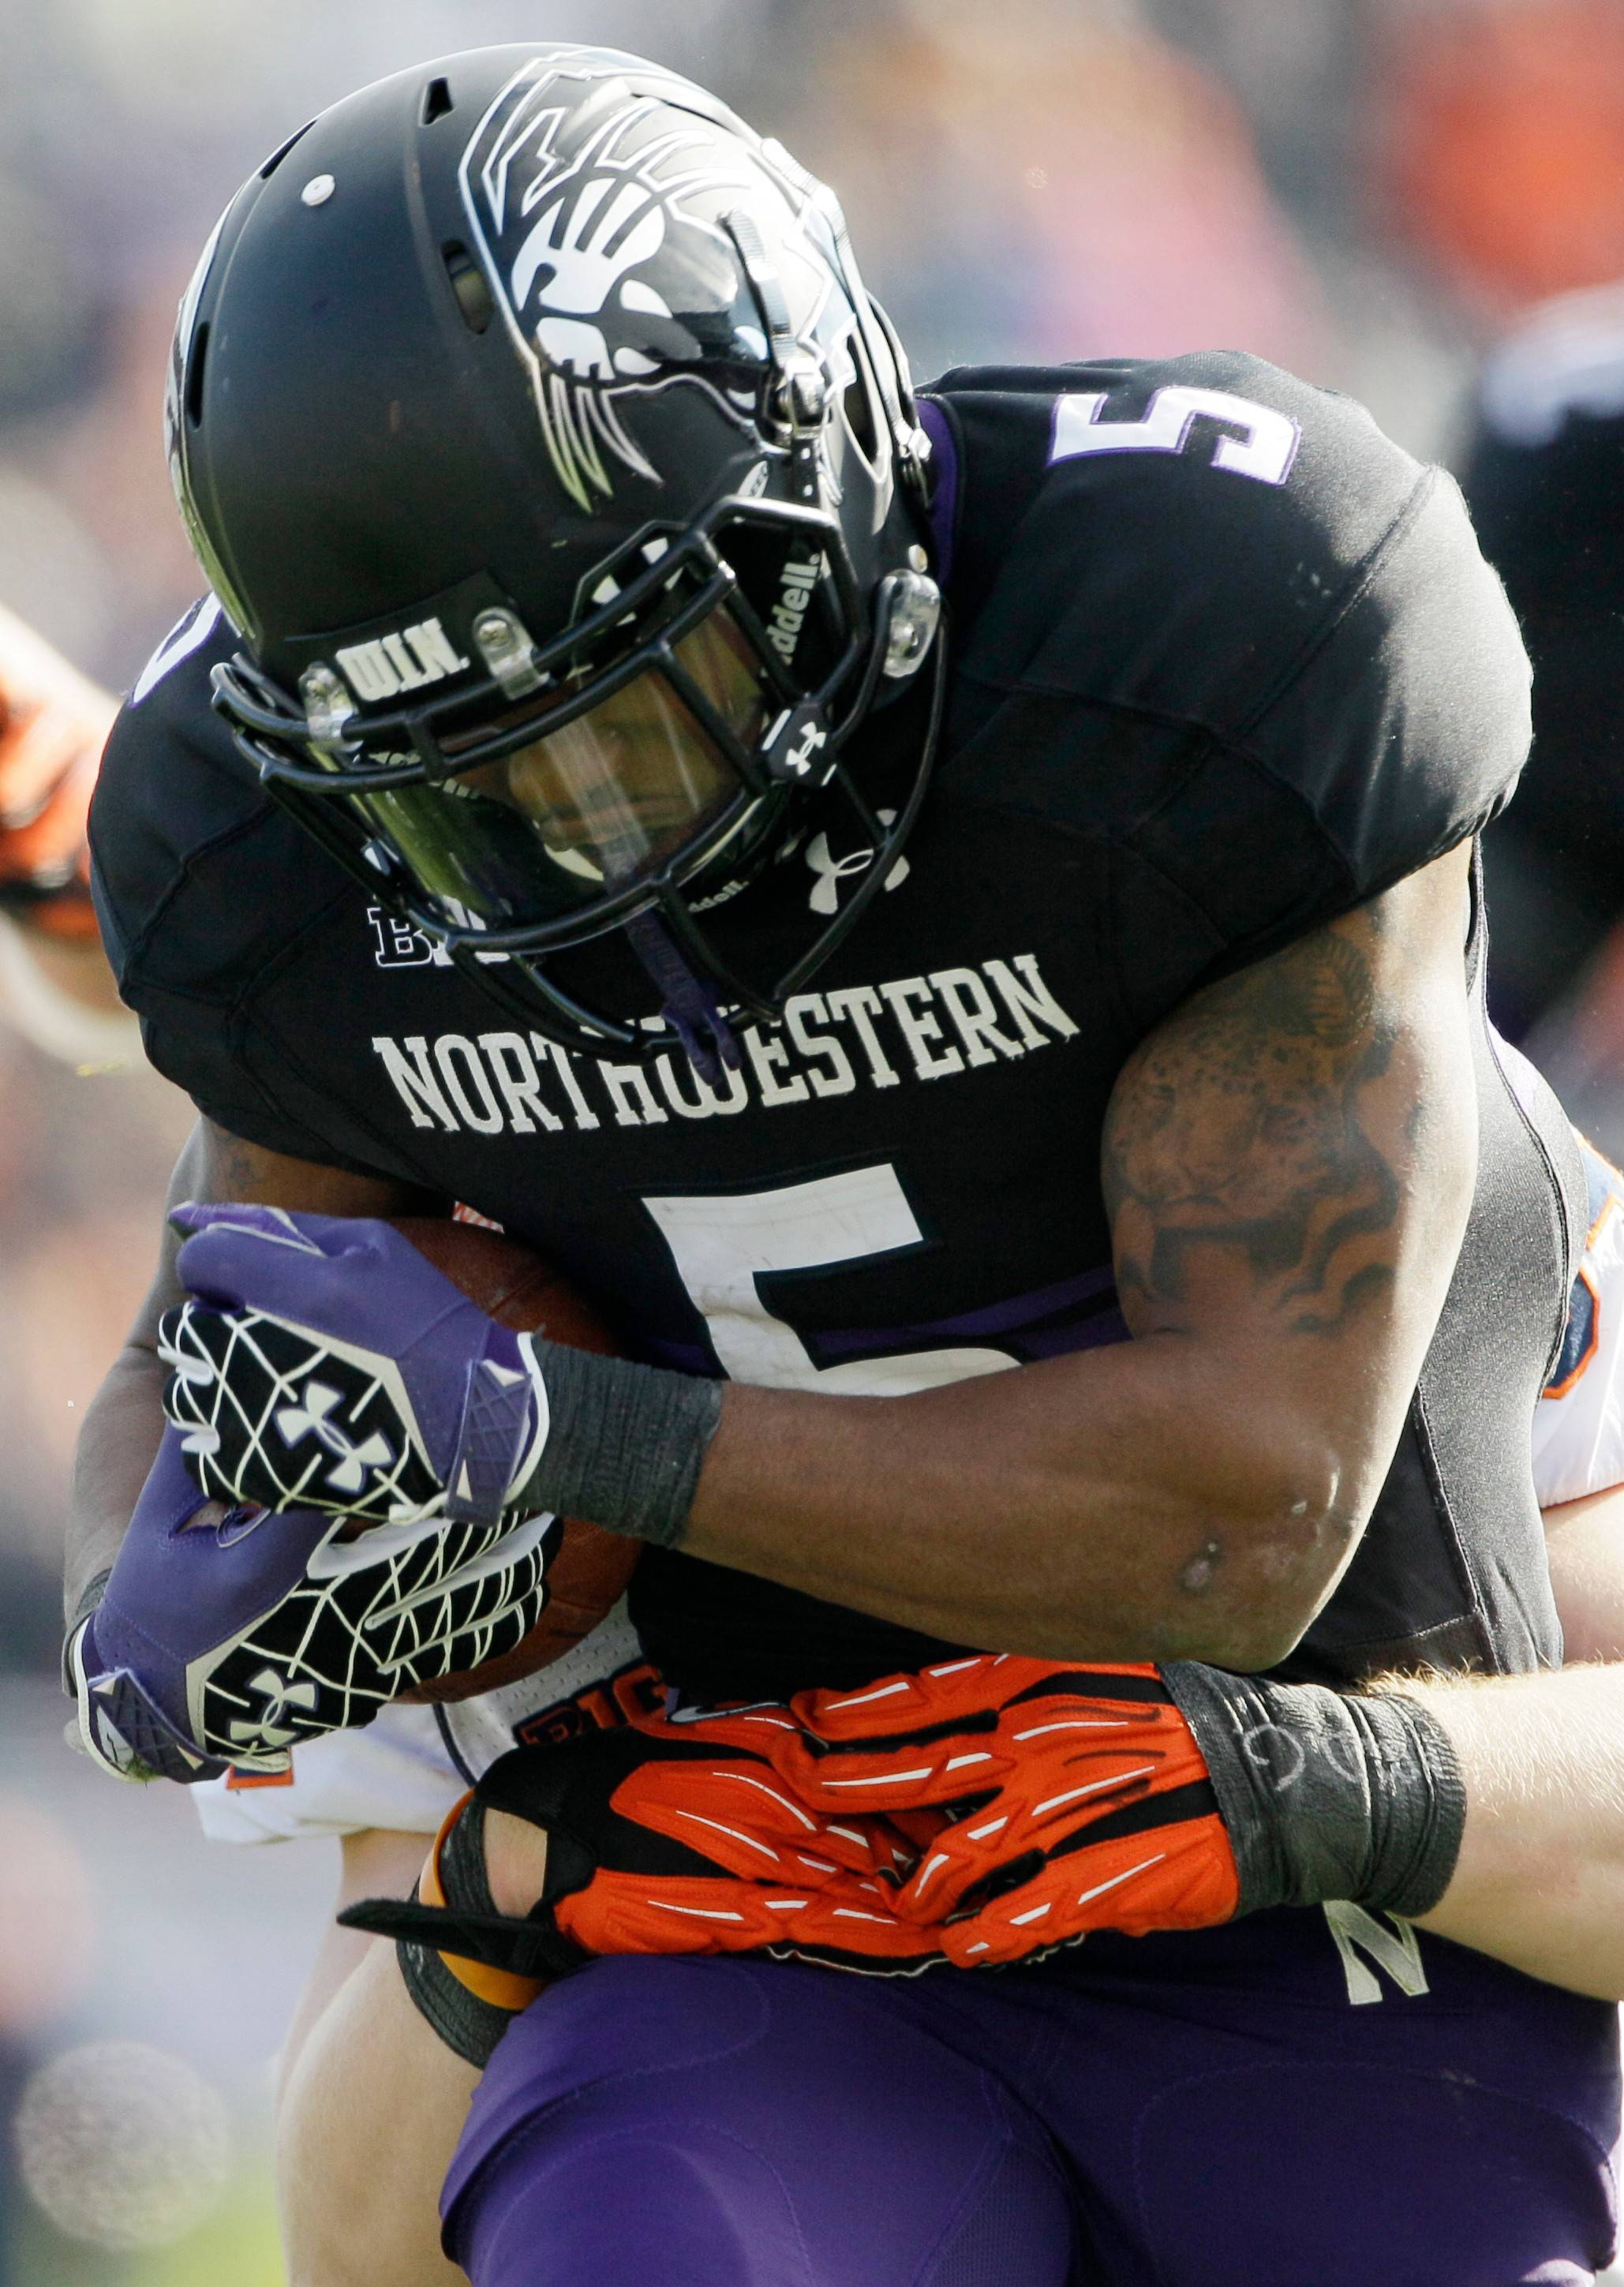 Northwestern running back Venric Mark (5), who was suspended recently, has decided to transfer and play closer to his home in Houston. The Wildcats will have to turn to a young group of running backs to fill the void.